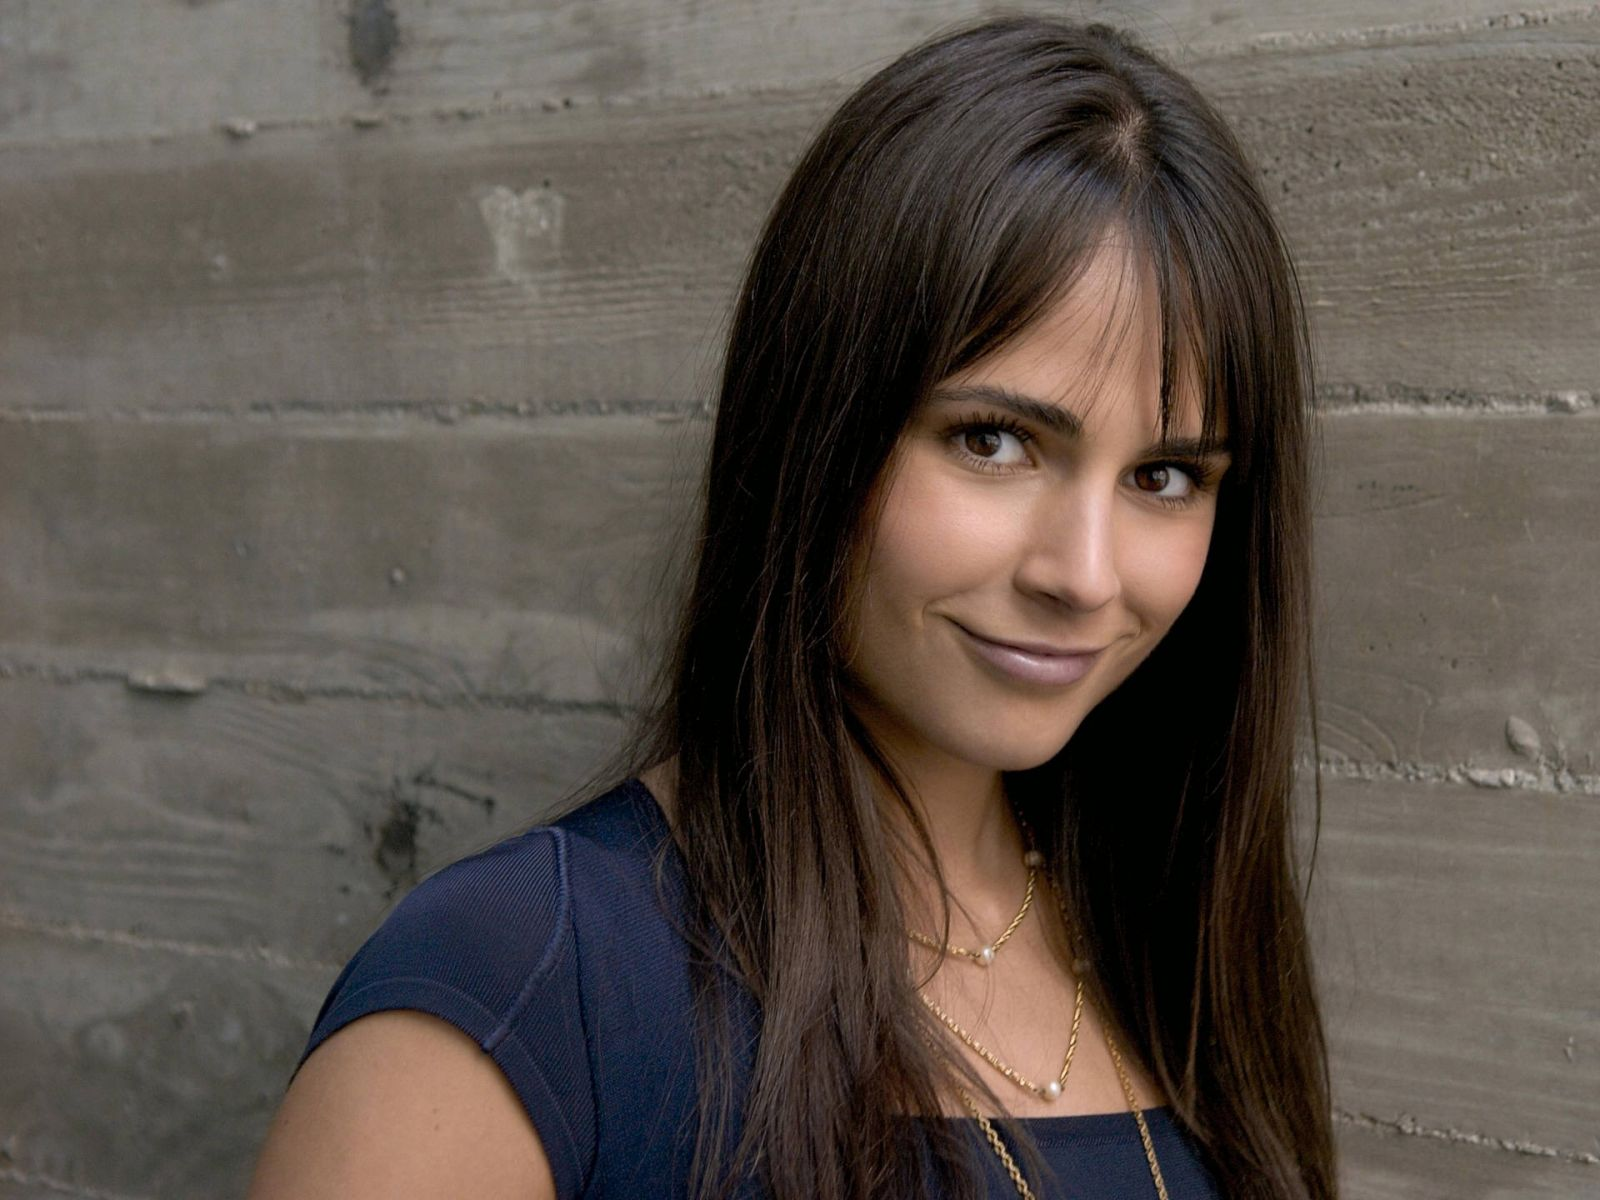 Fast And Furious Cars Hd Wallpapers Jordana Brewster Hd Wallpapers High Definition Free